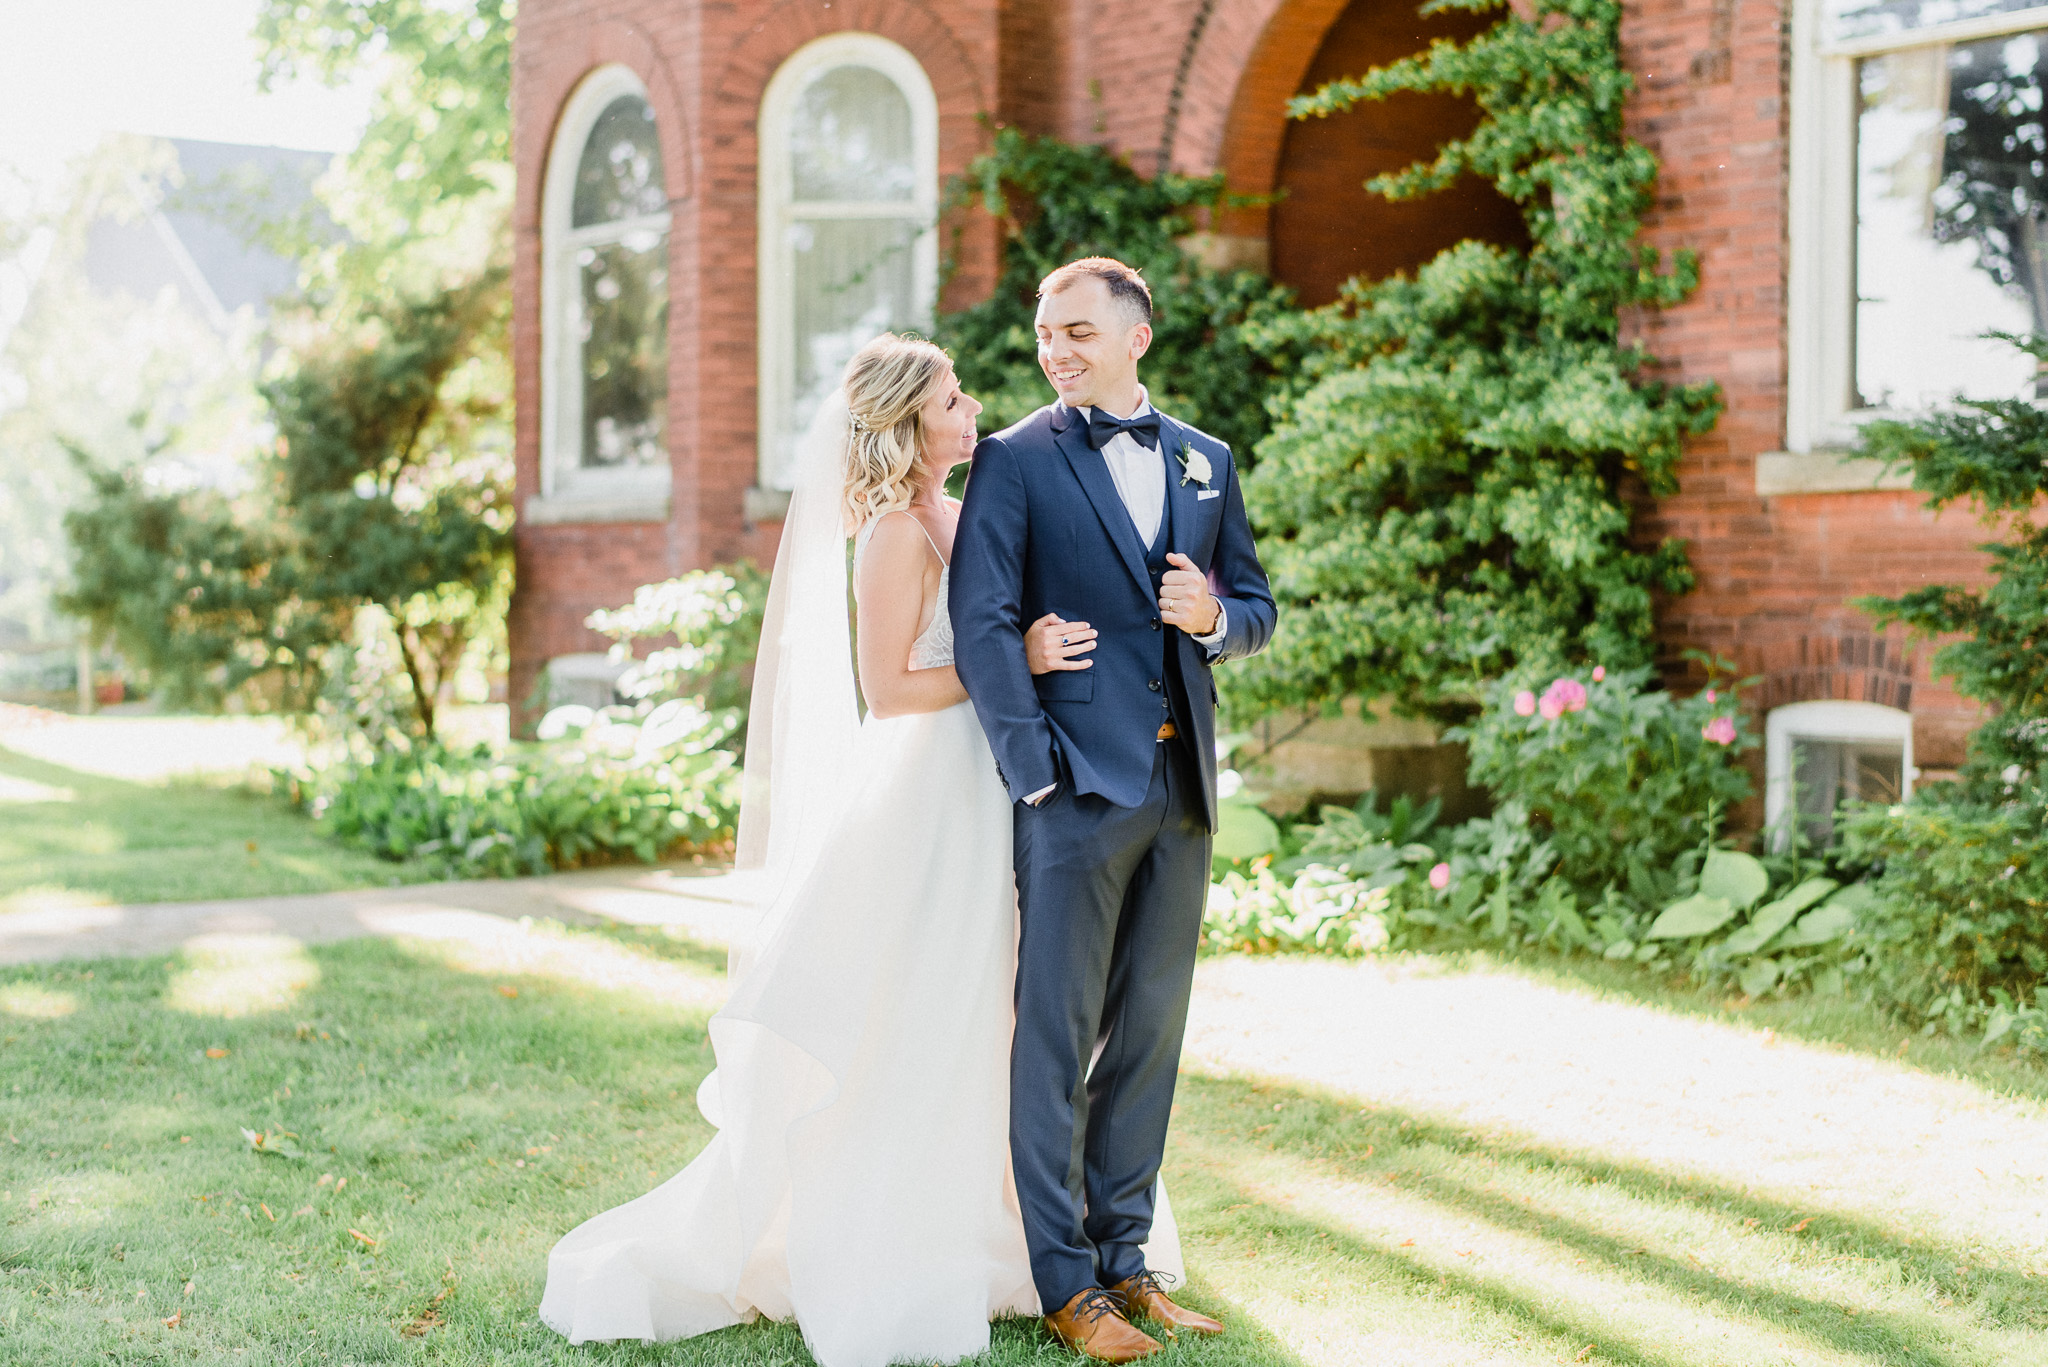 Jordan, Ontario wedding by Jenn Kavanagh Photography